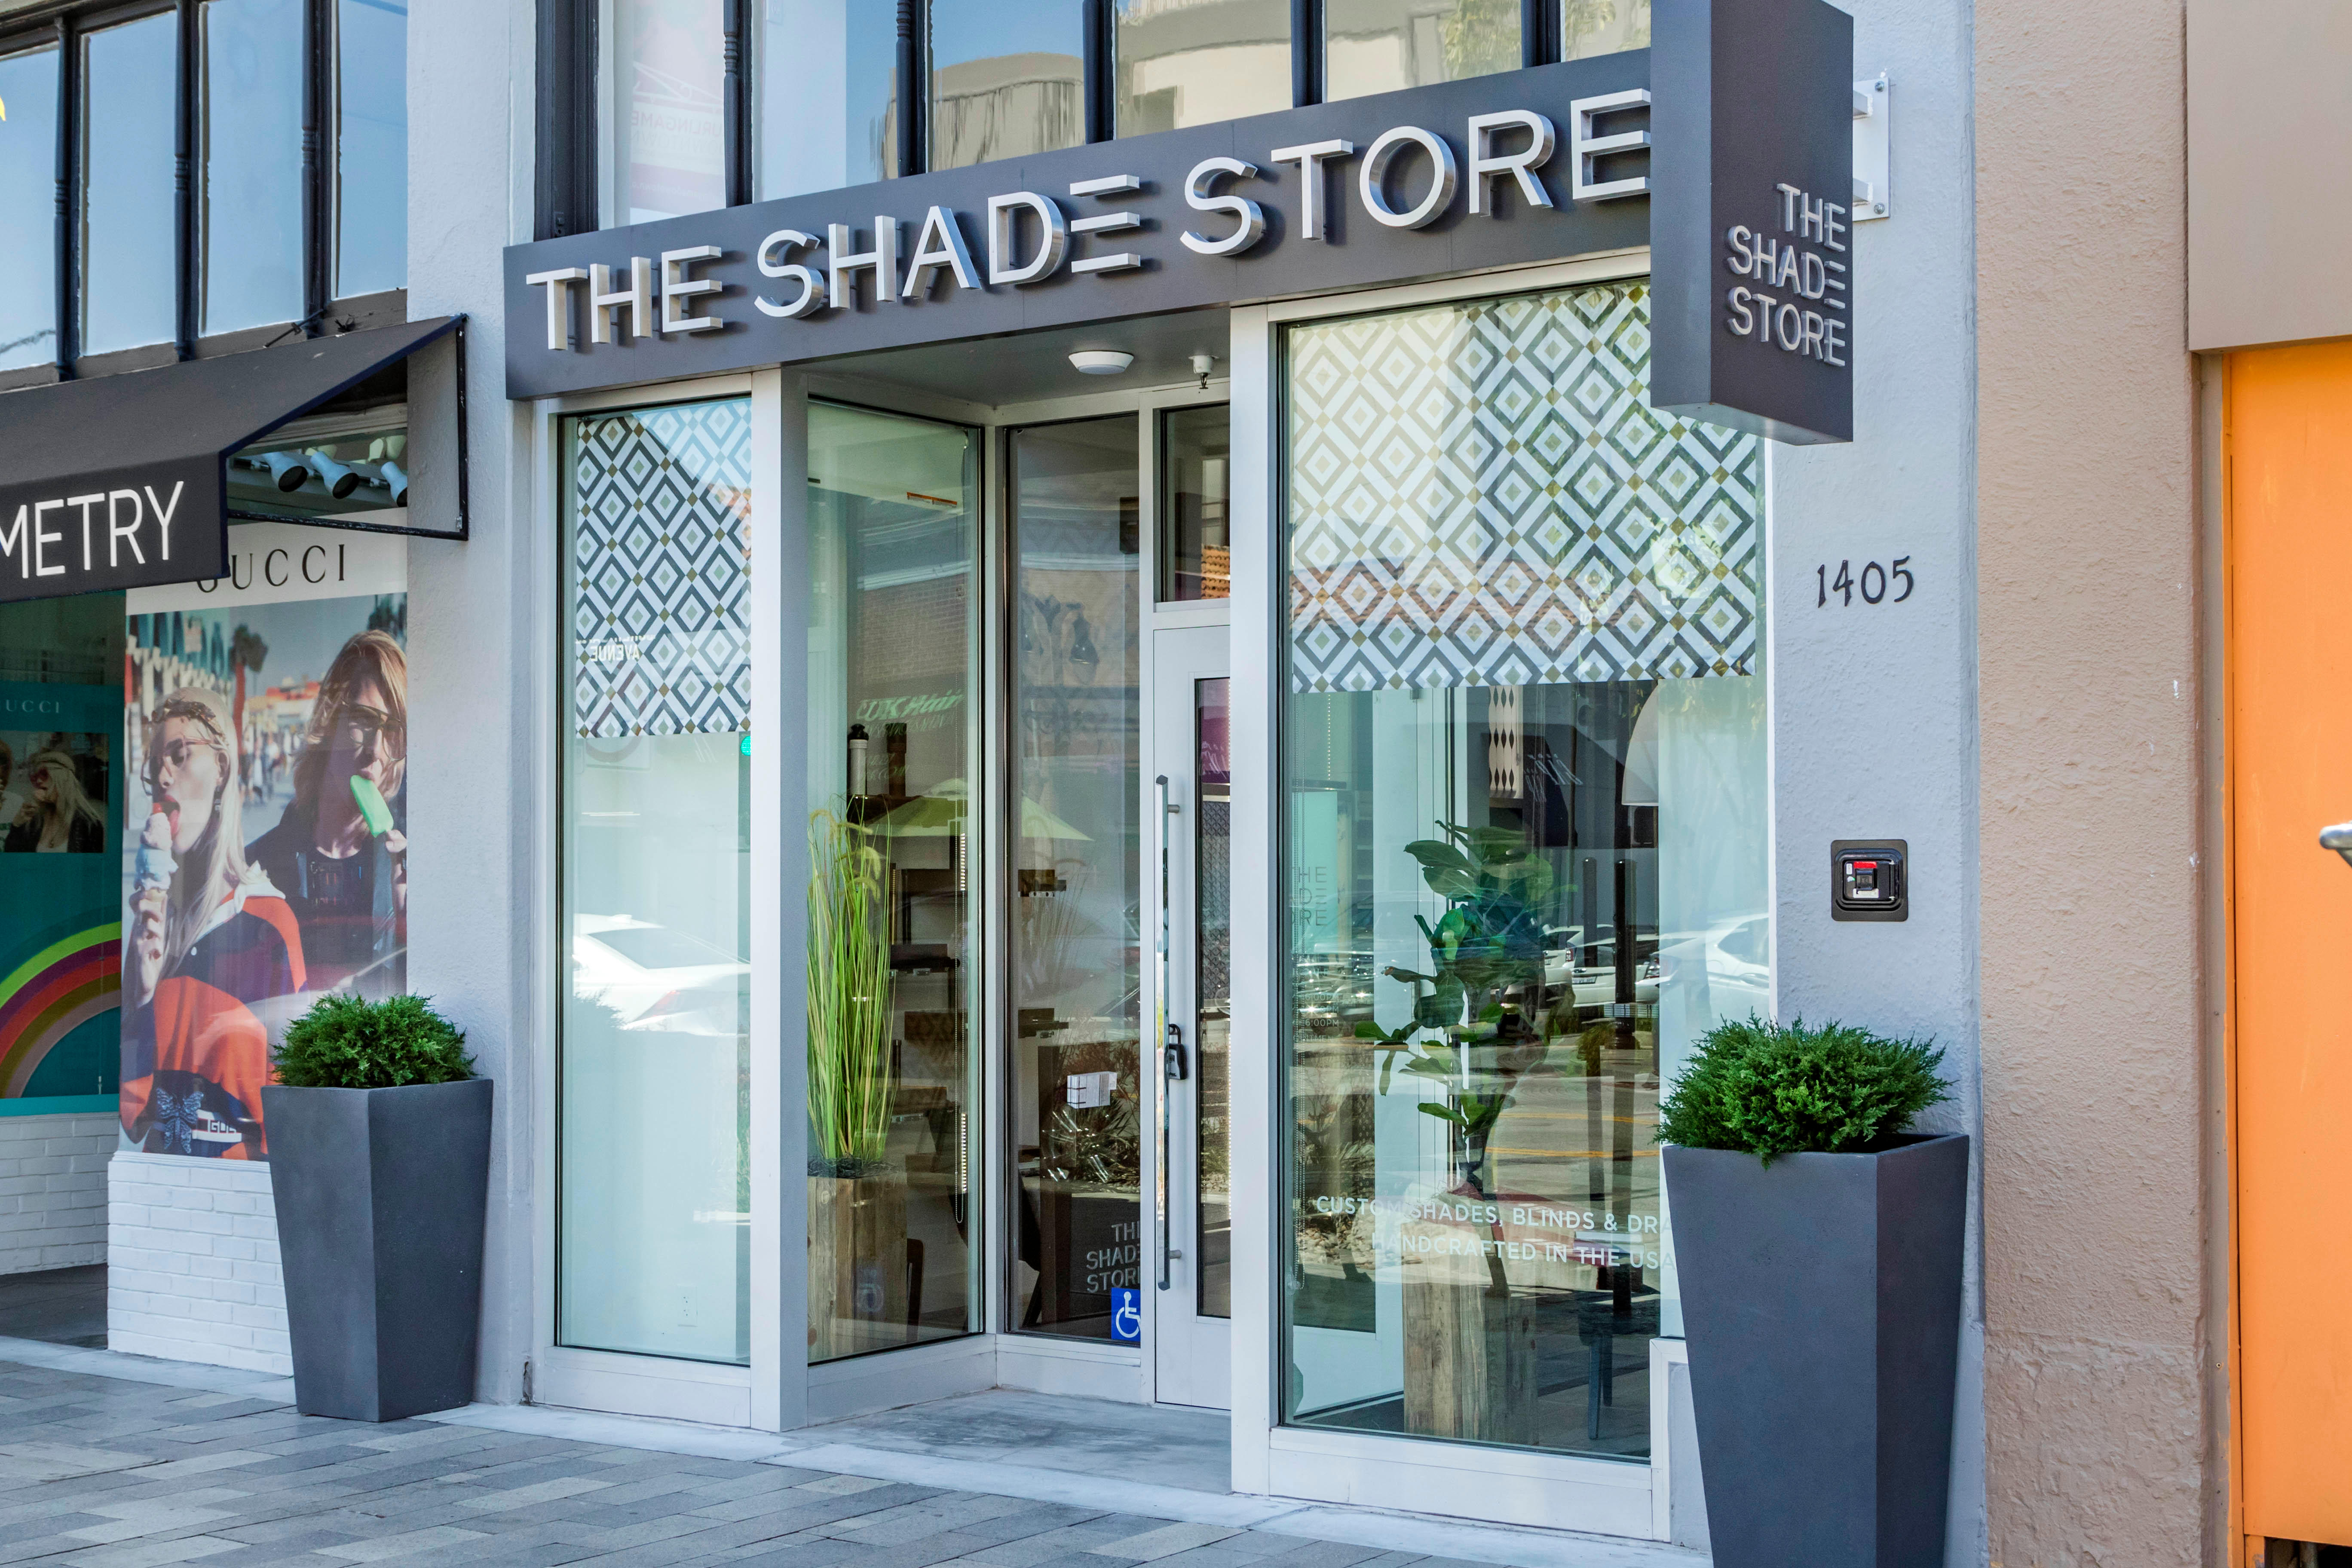 The Shade Store image 1